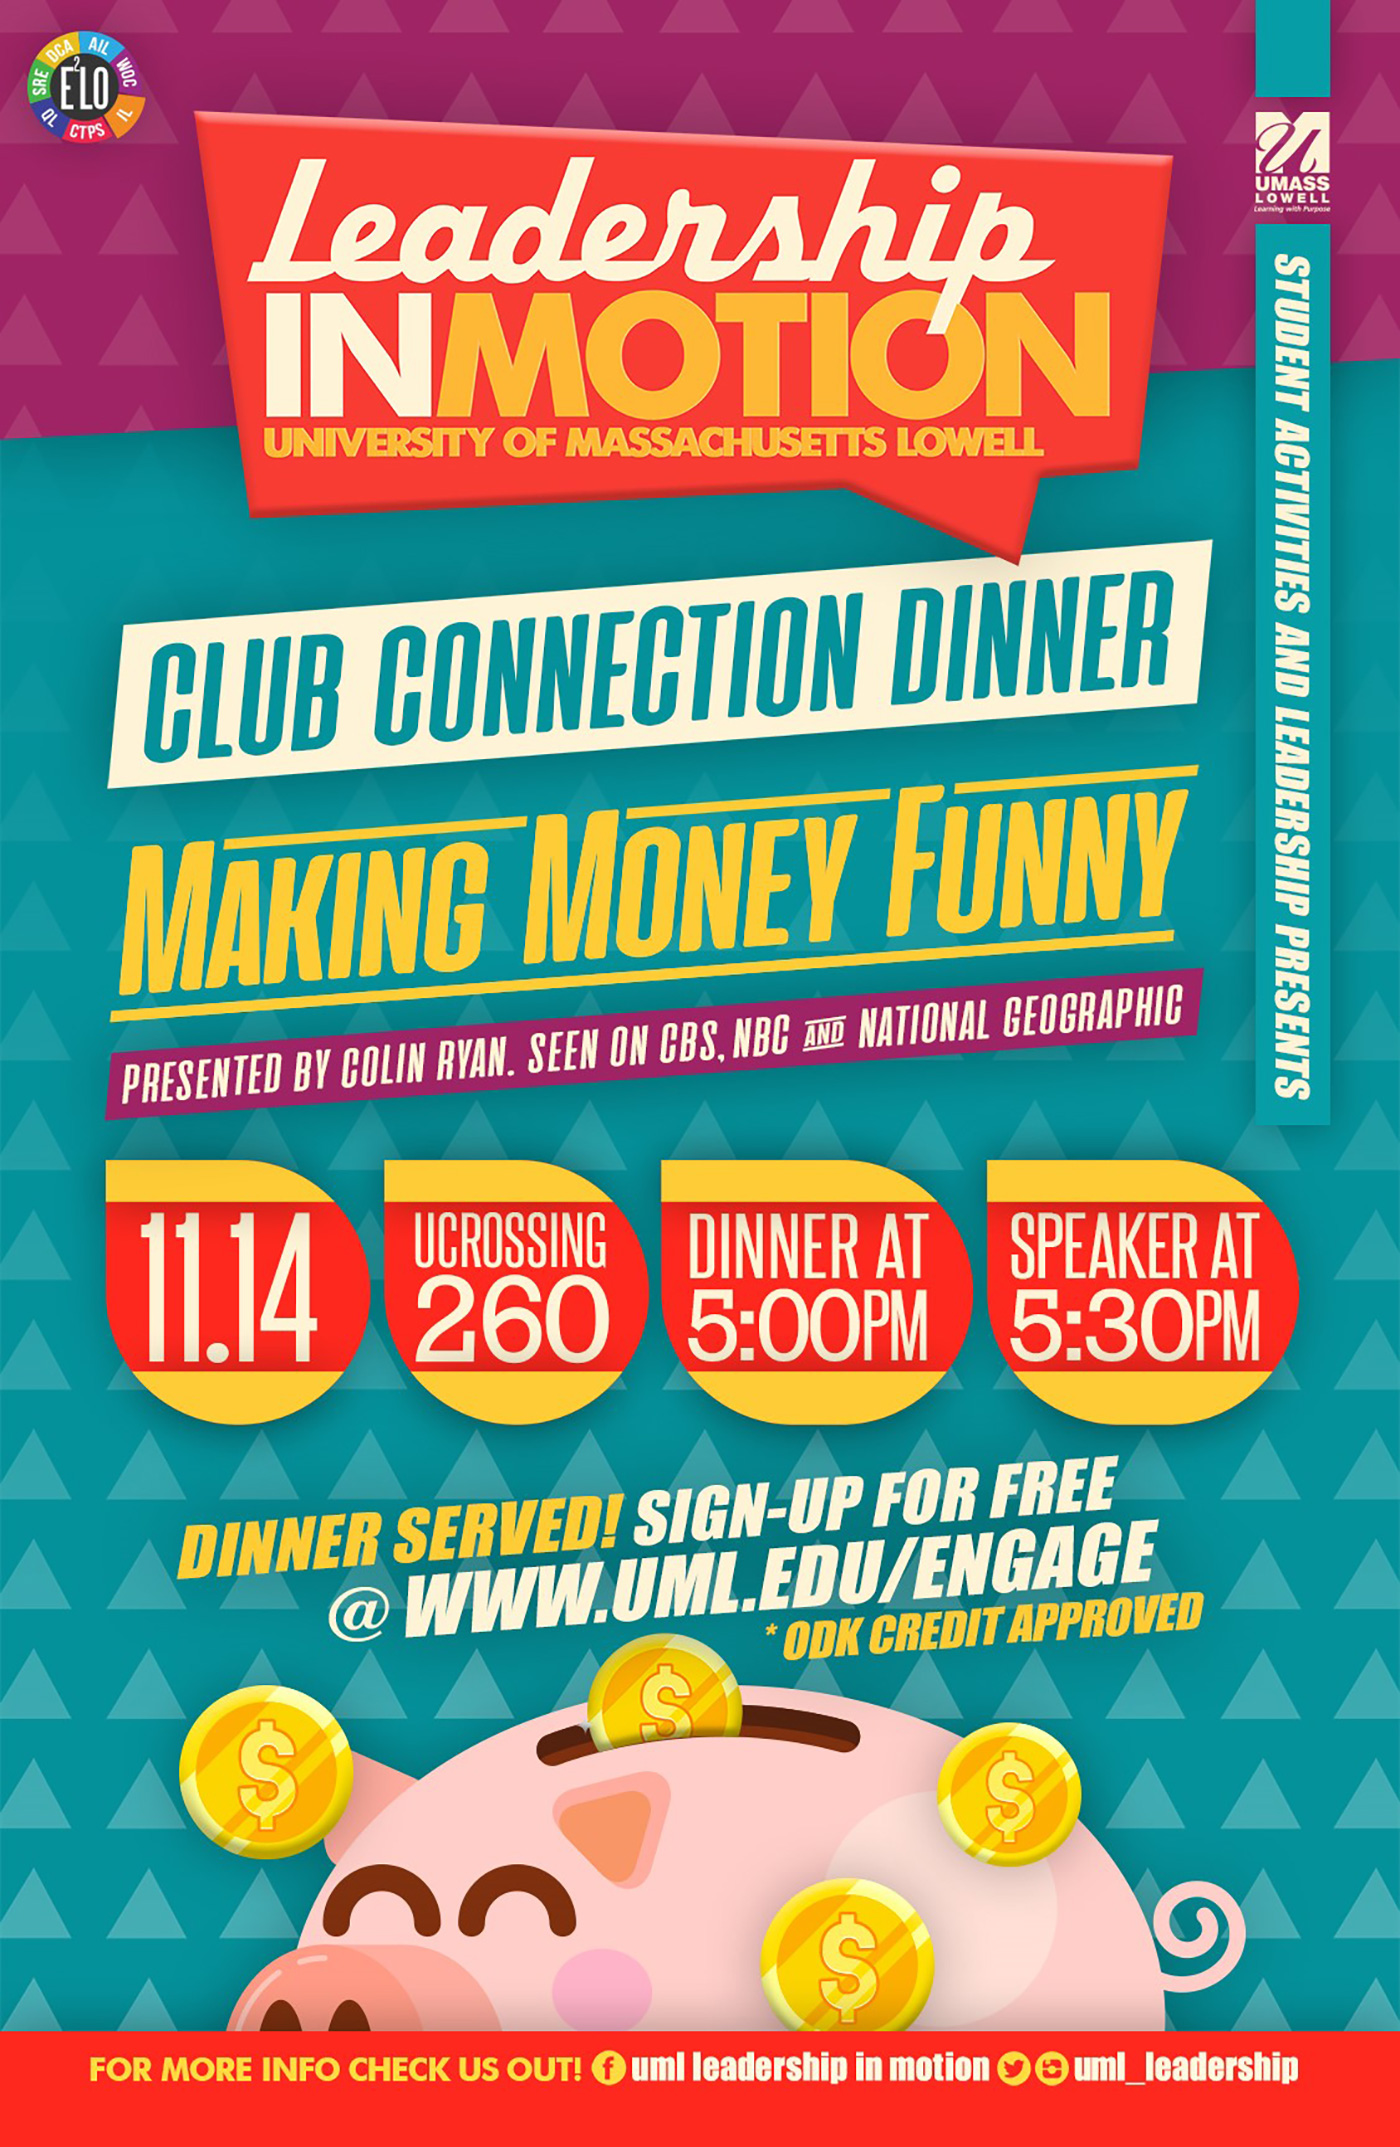 Flyer for Making Money Funny Leadership In Motion event.